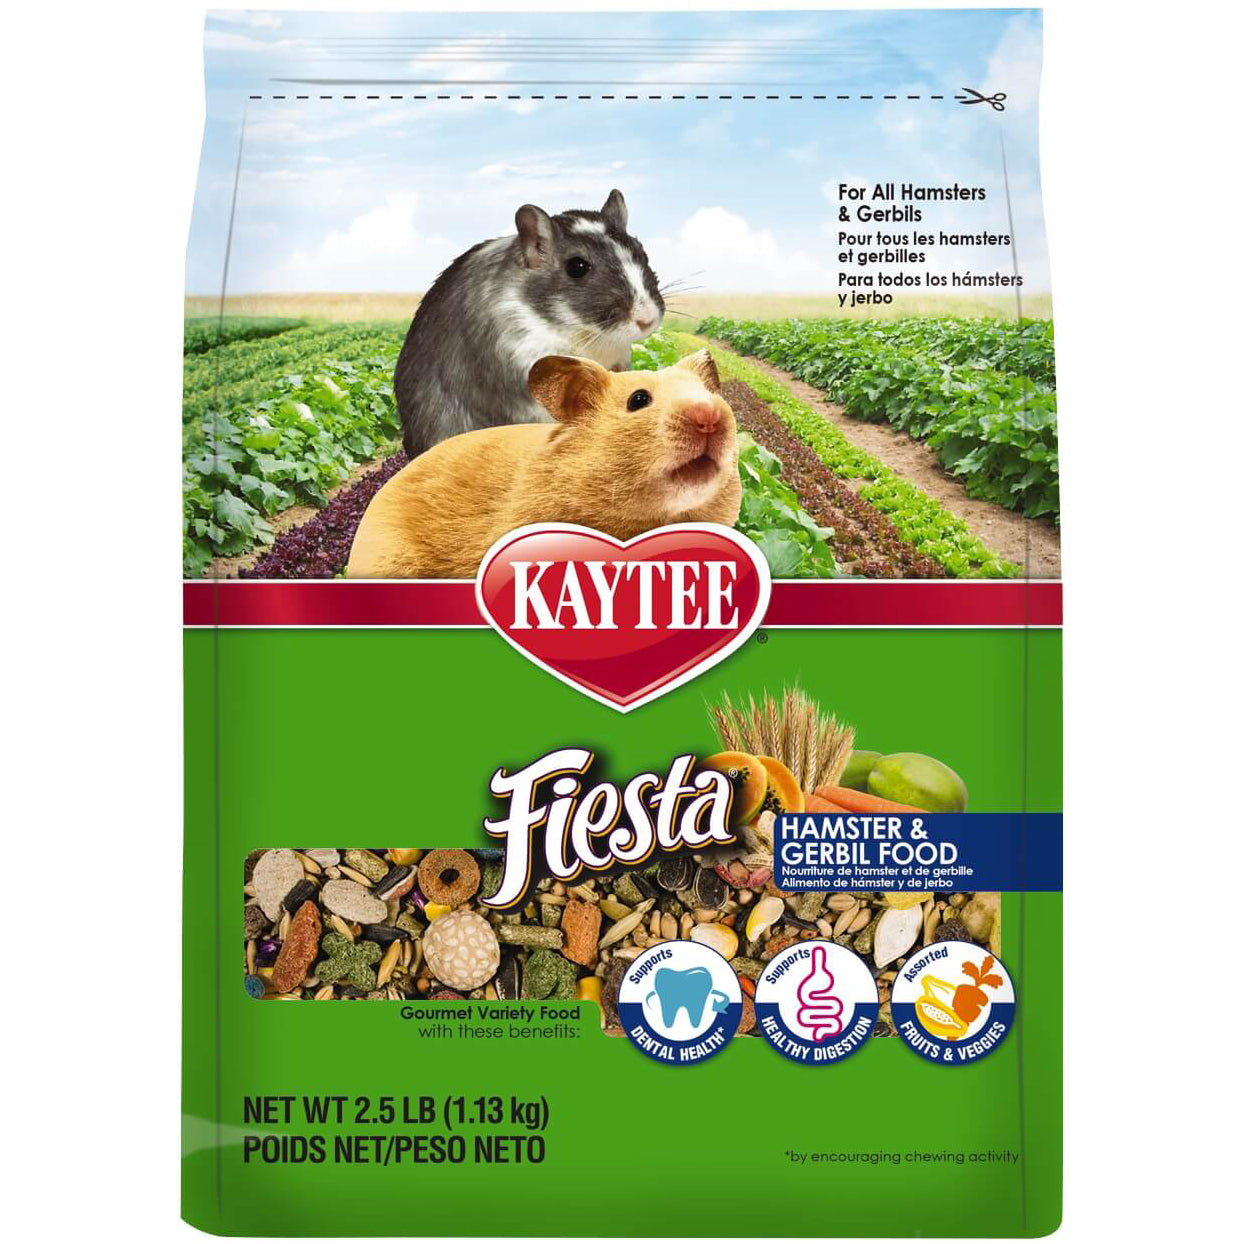 Kaytee® Fiesta® Hamster and Gerbil Food - Critter Country Supply Ltd.